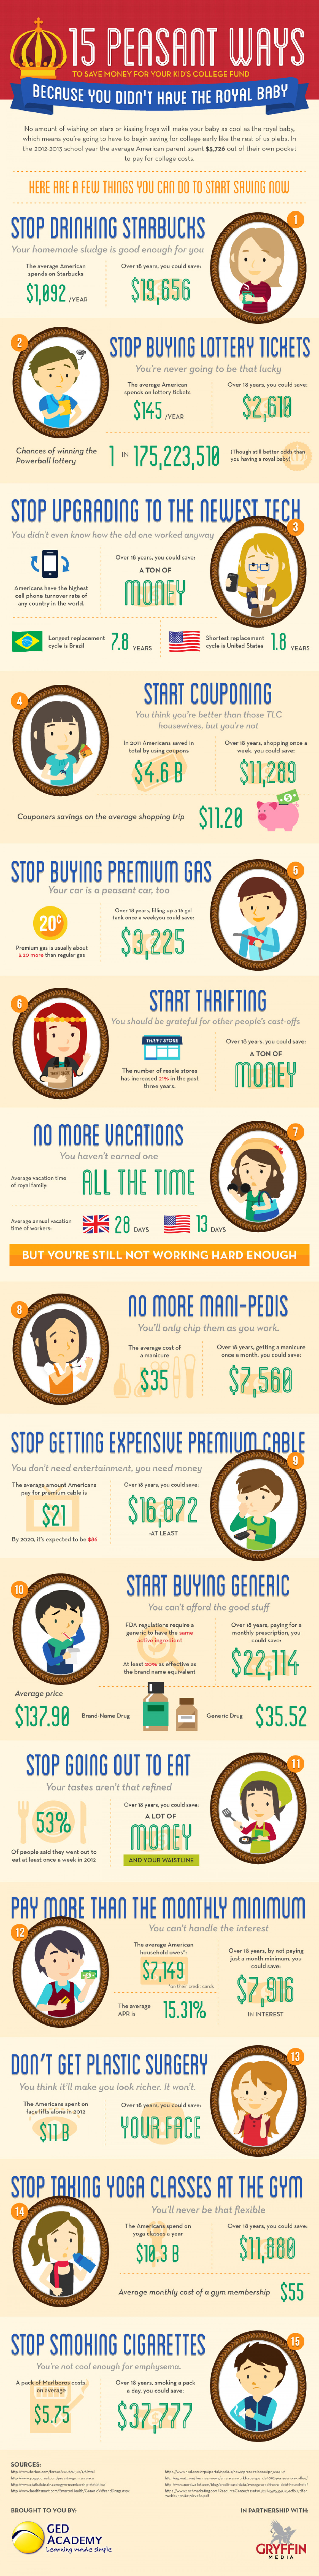 15 Peasant Ways to Save Money For Your Kid's College Fund Infographic